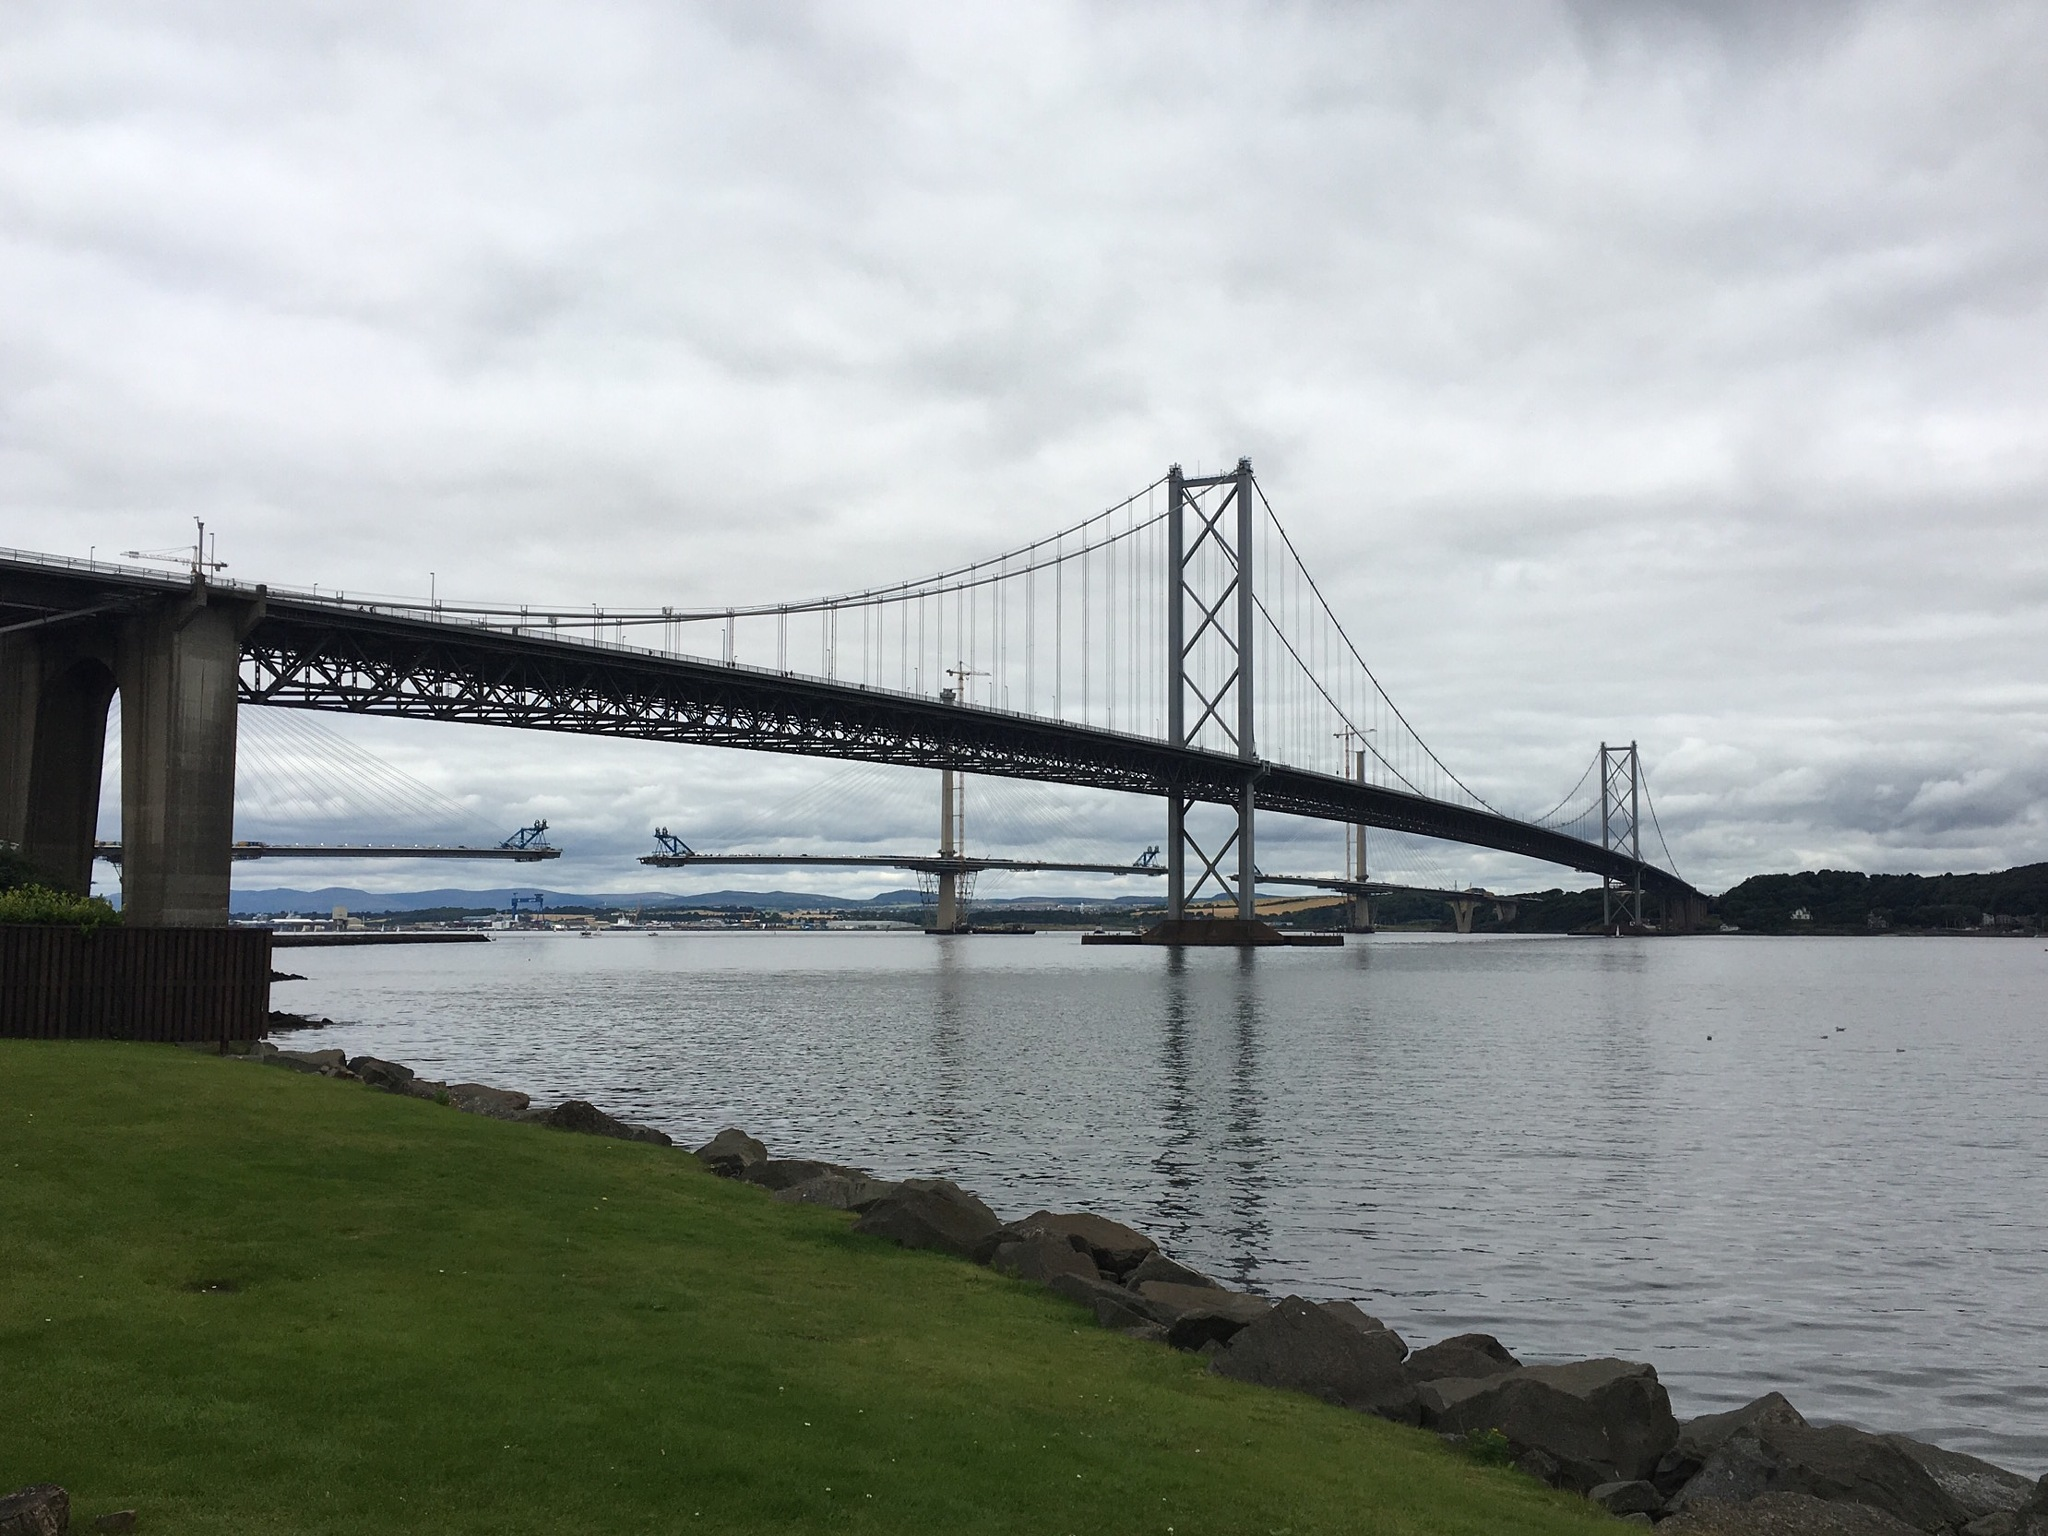 Queensferry: Spanning a Lifetime  by Ruth Pollock